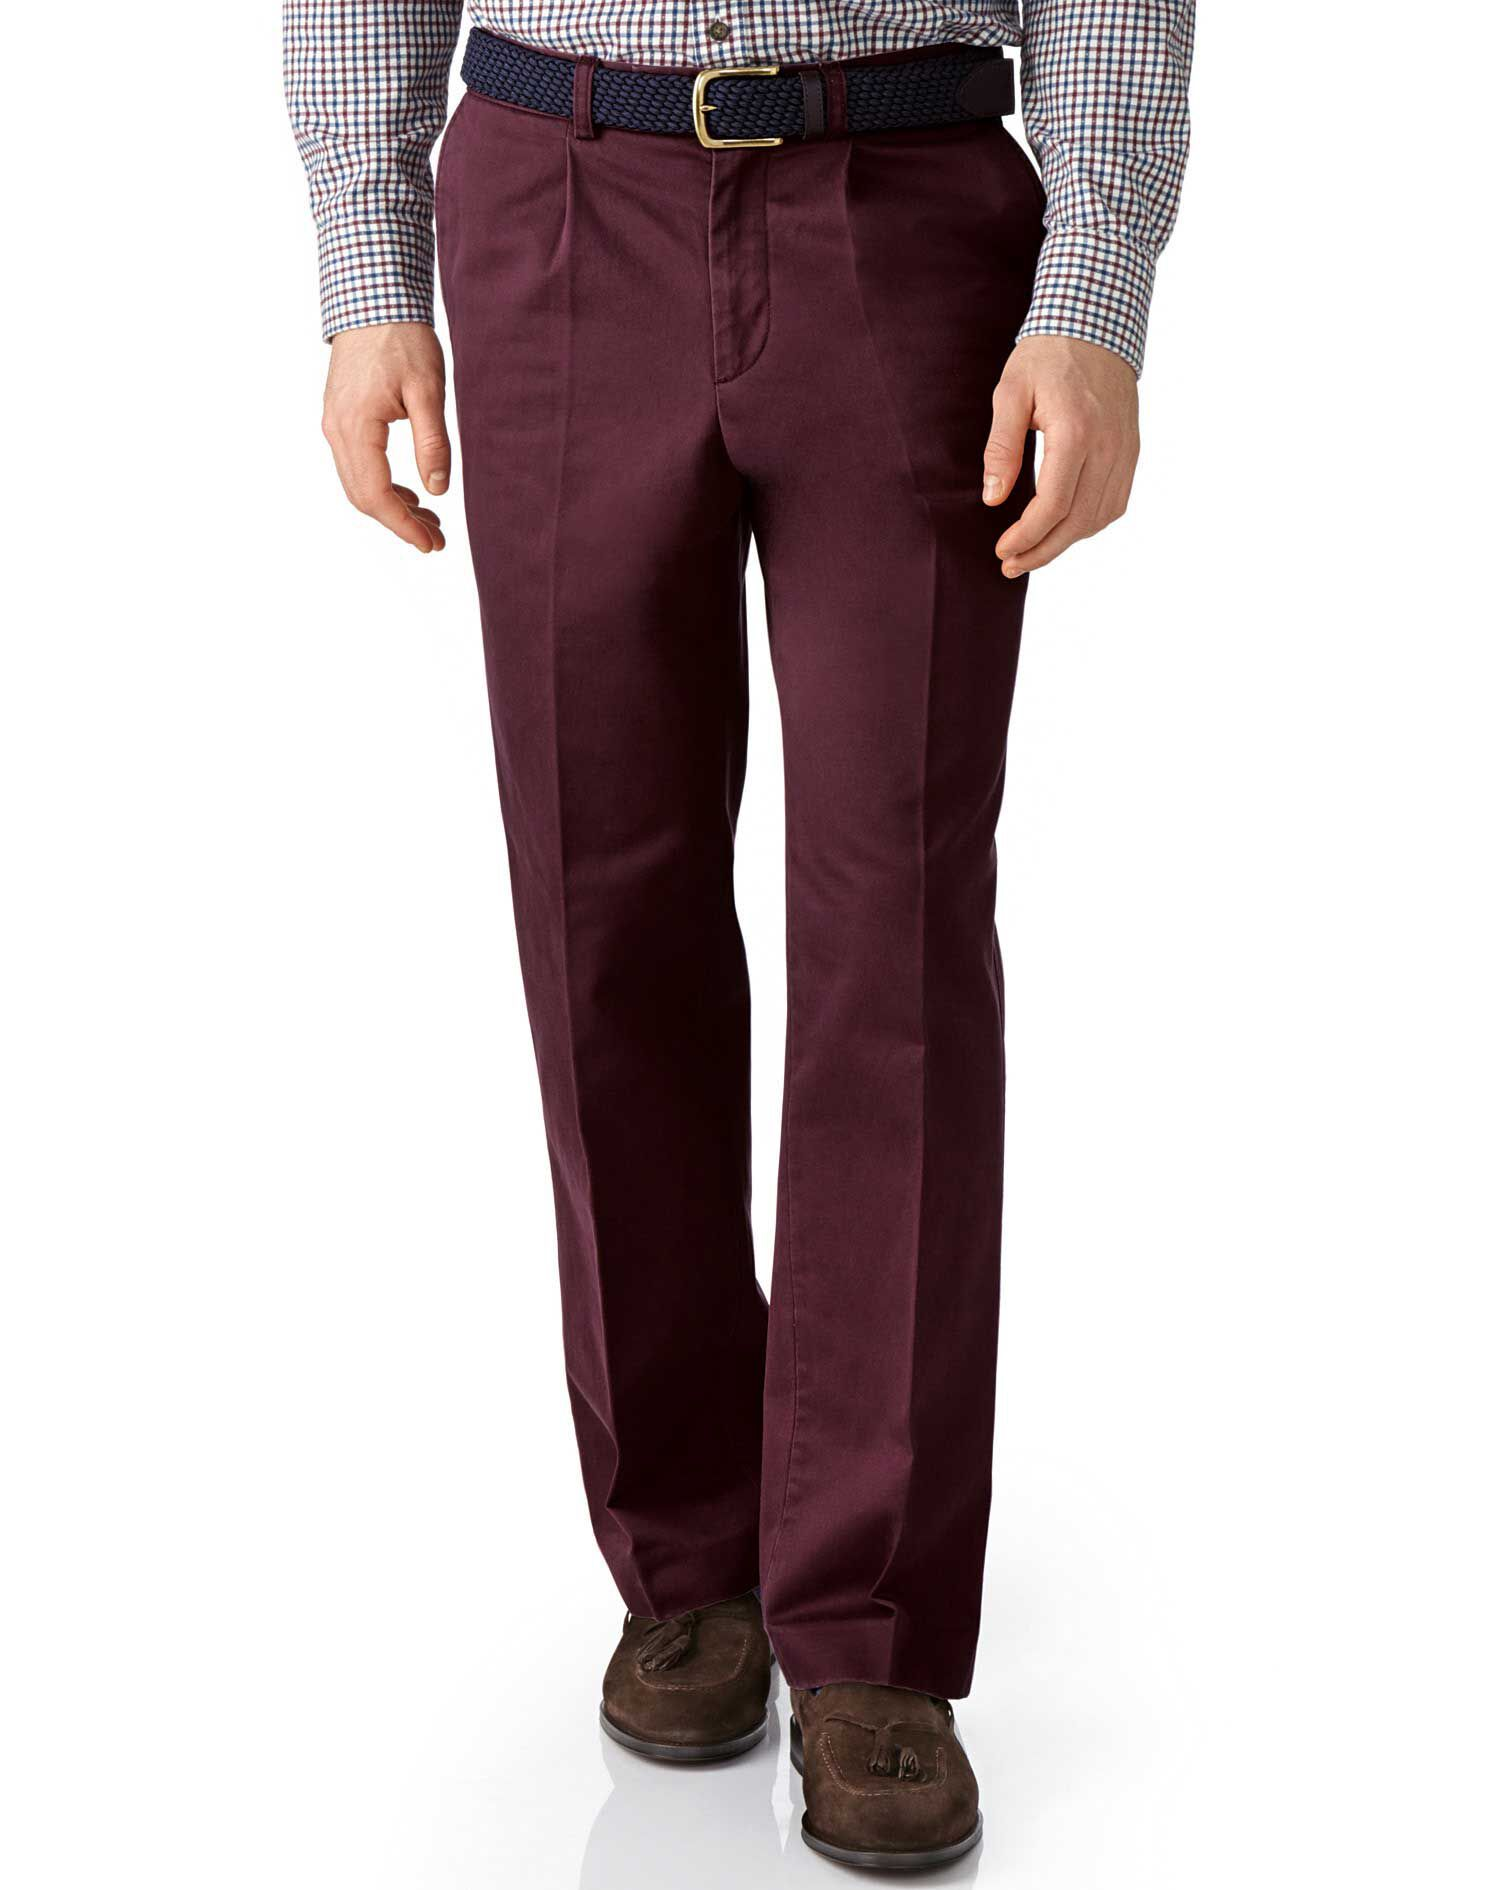 Wine Classic Fit Single Pleat Cotton Chino Trousers Size W32 L34 by Charles Tyrwhitt